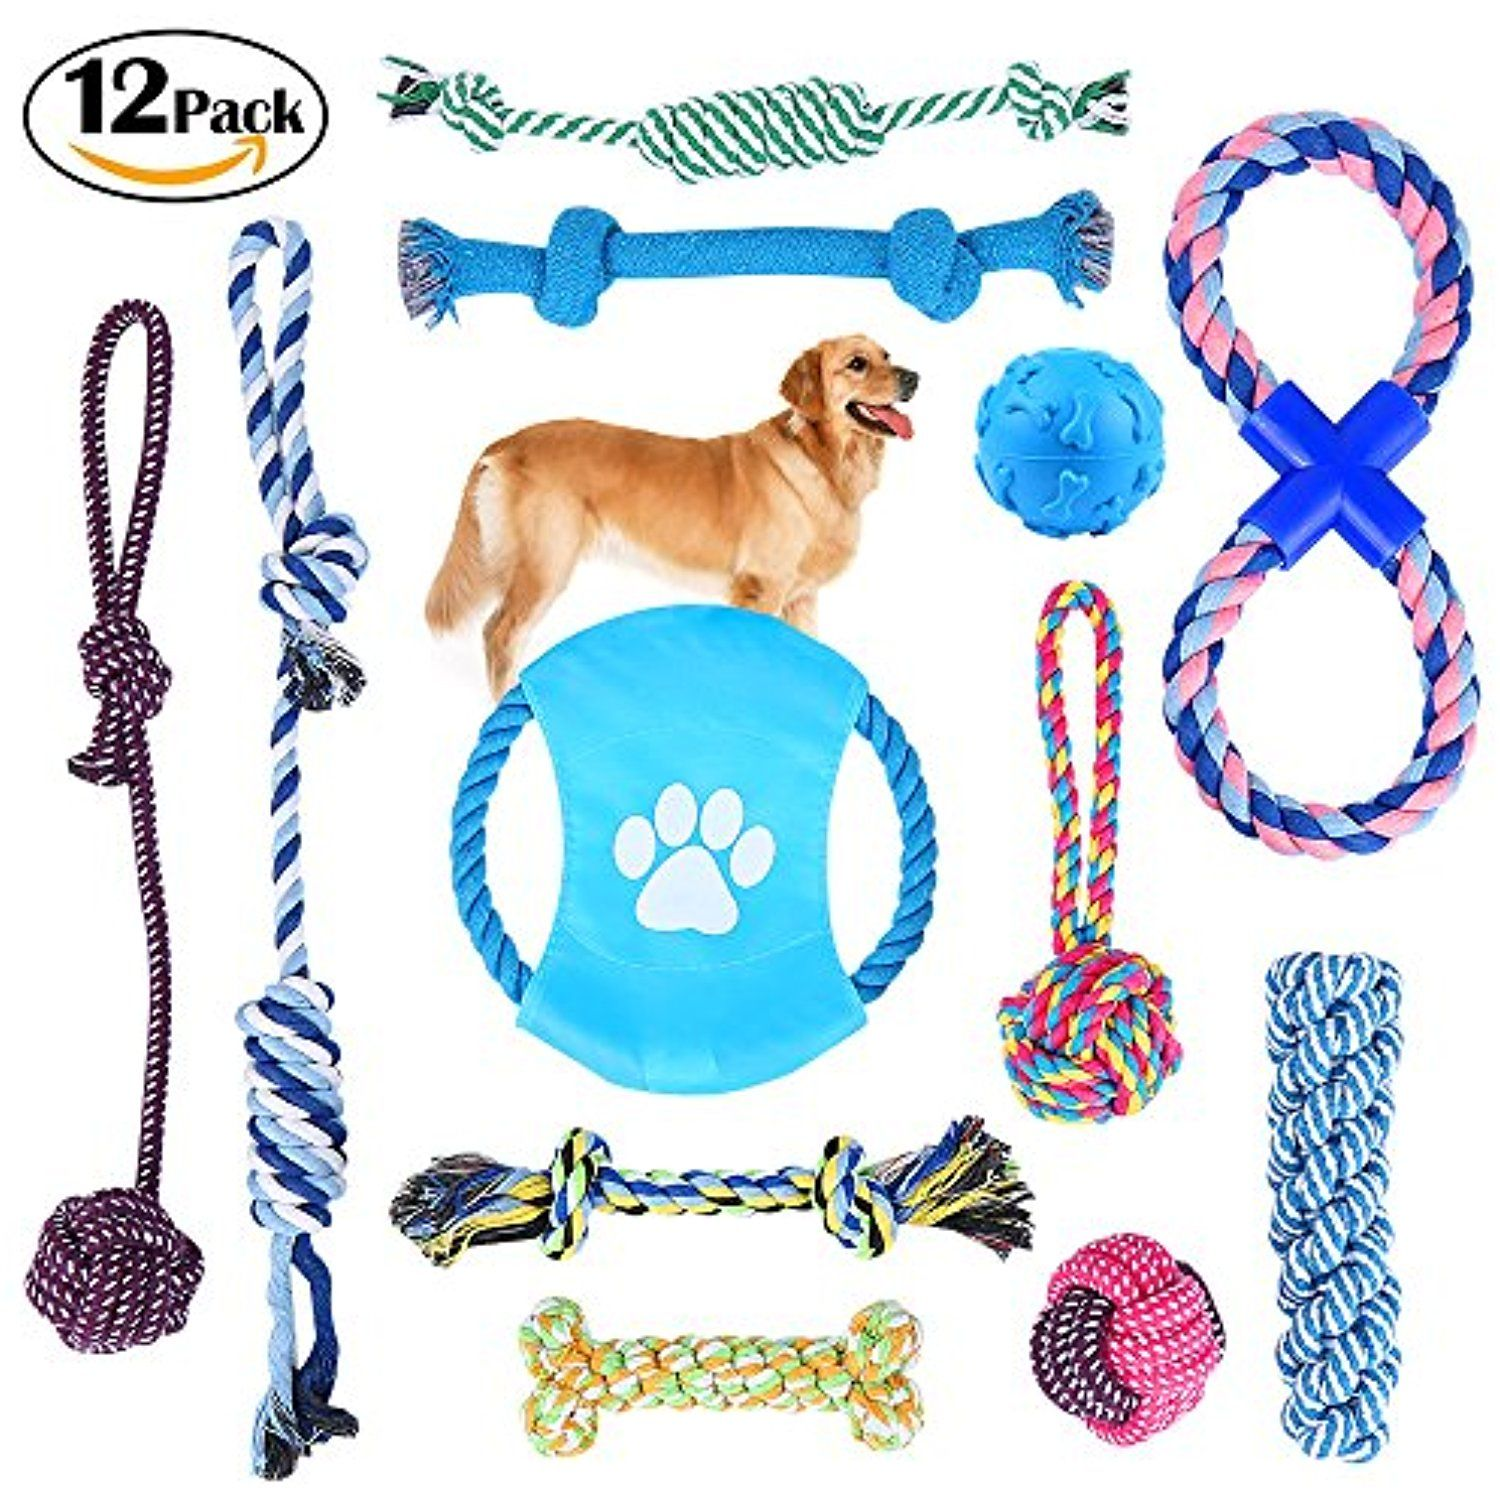 Dog Rope Toys Puppy Chew Toys Set Of 12 Honfei Dog Cotton Rope